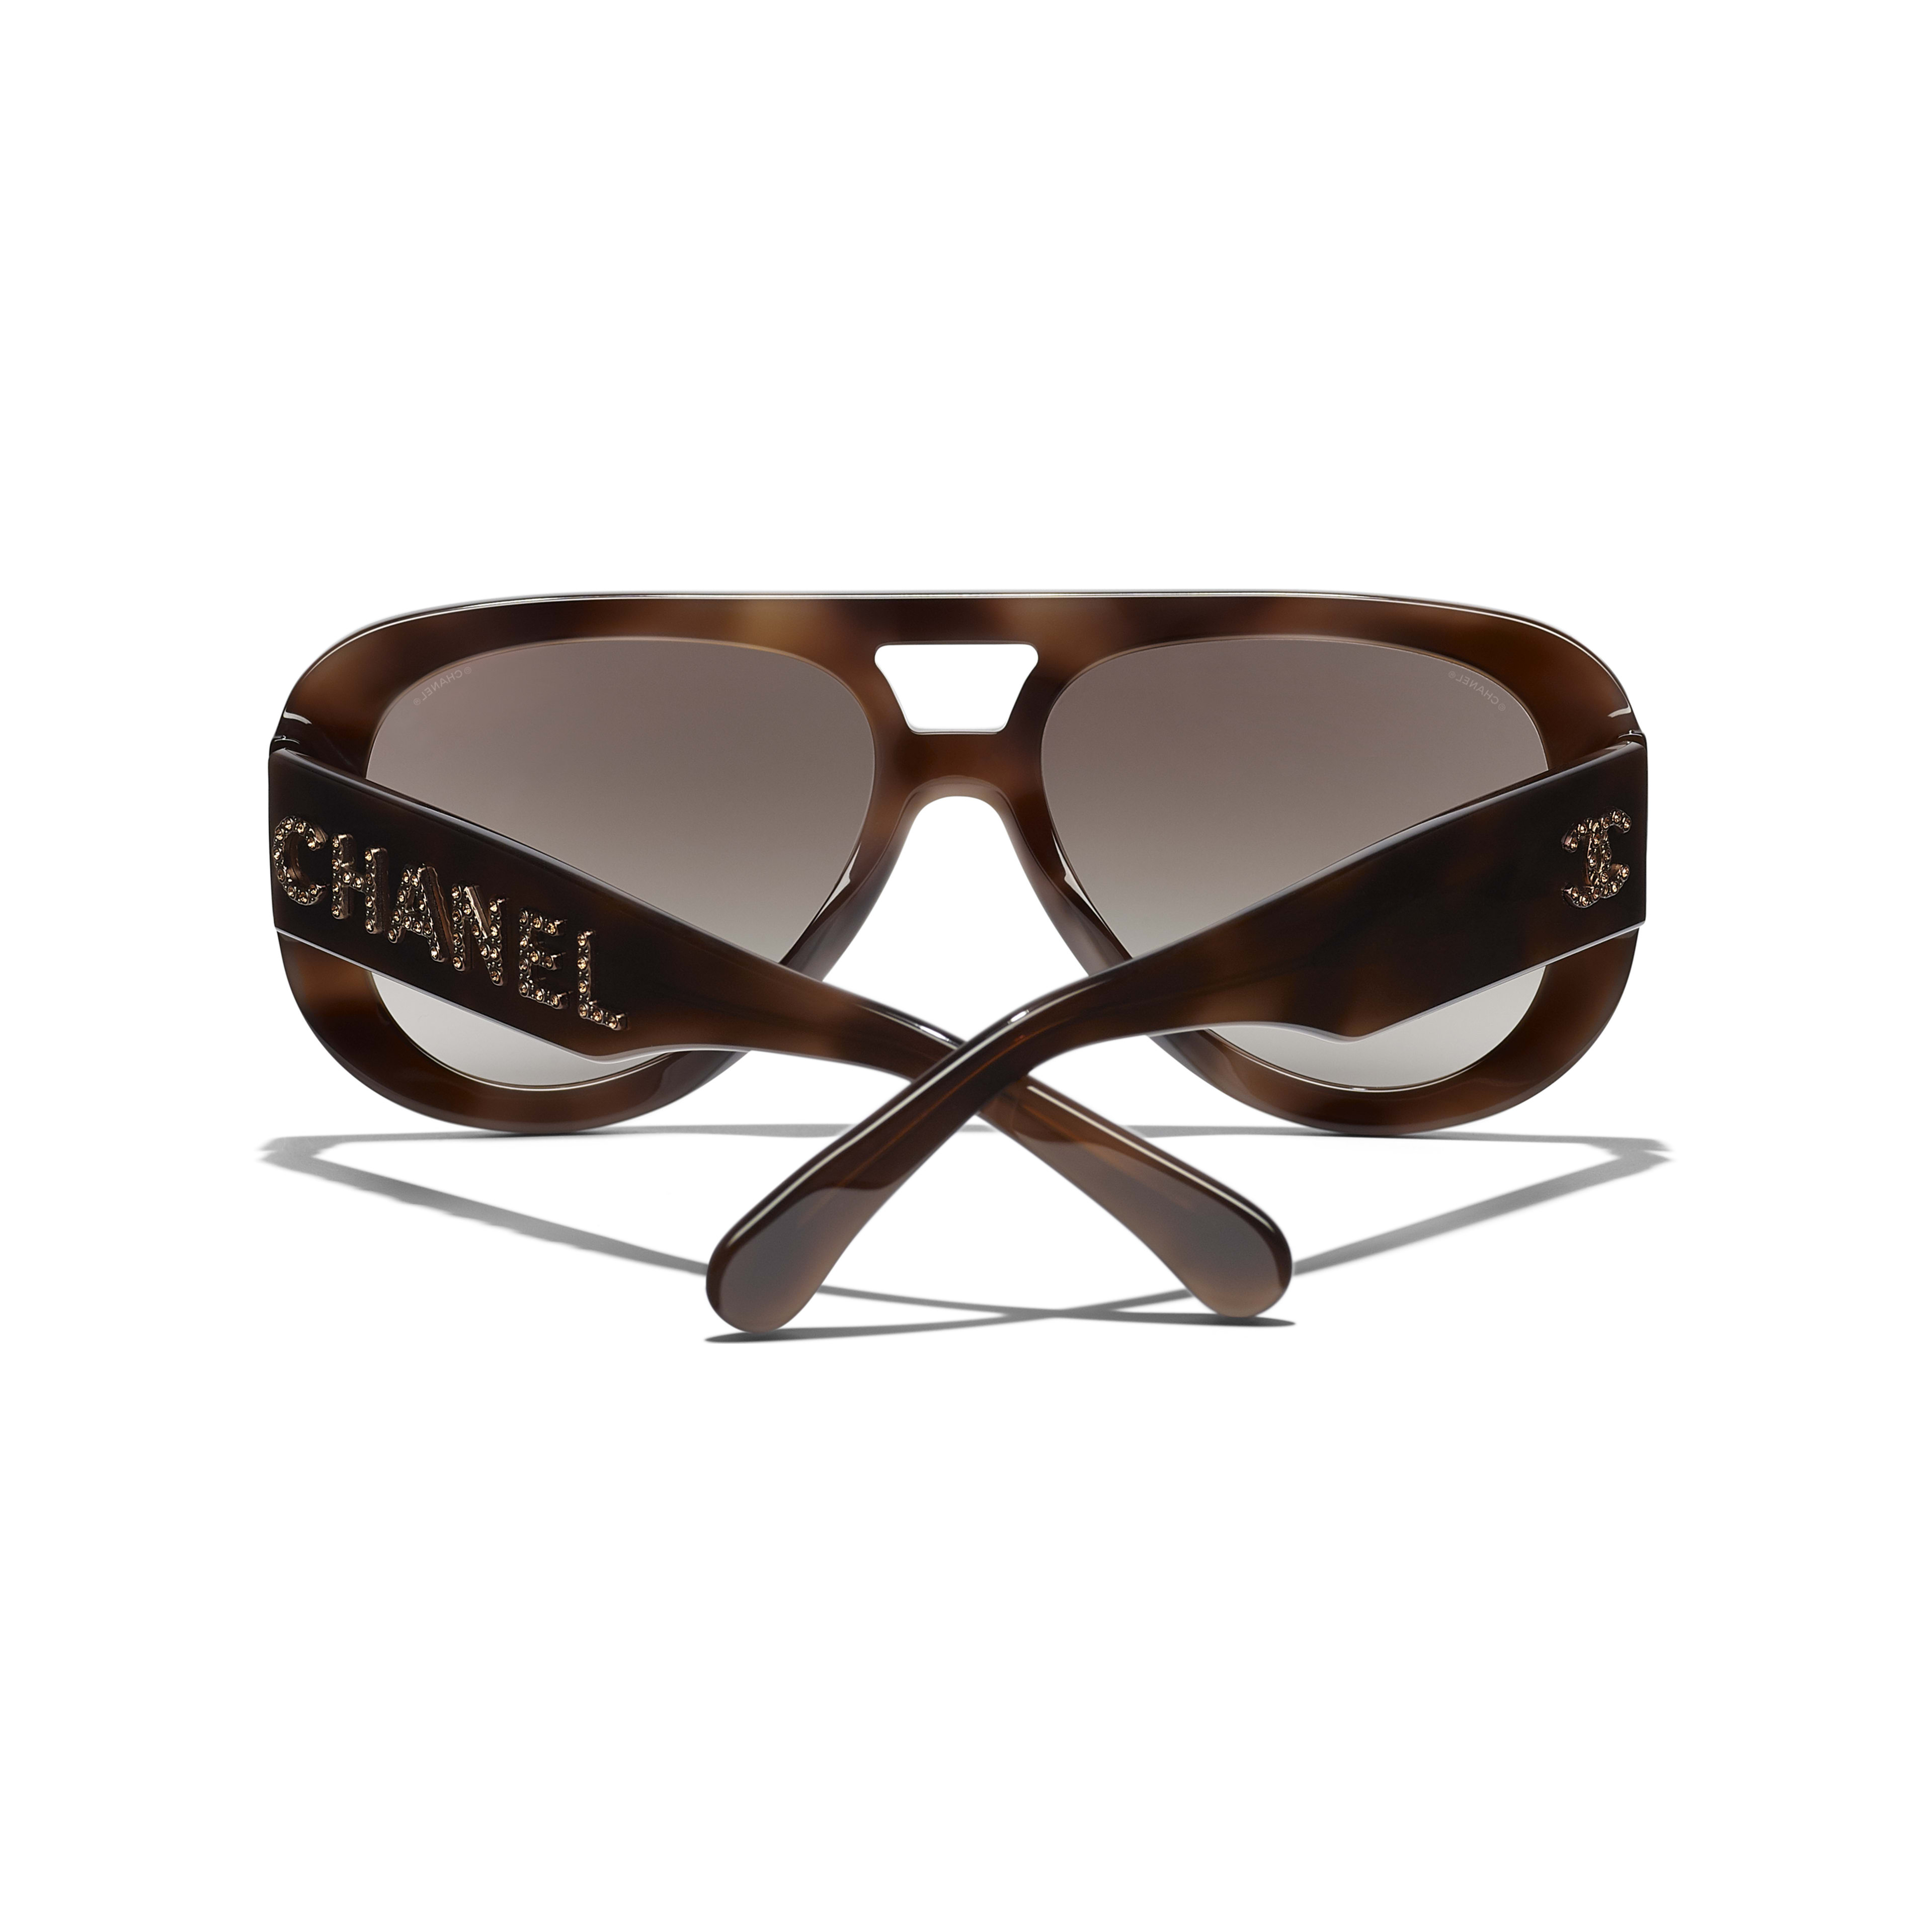 Pilot Sunglasses - Tortoise - Acetate & Strass - Extra view - see full sized version